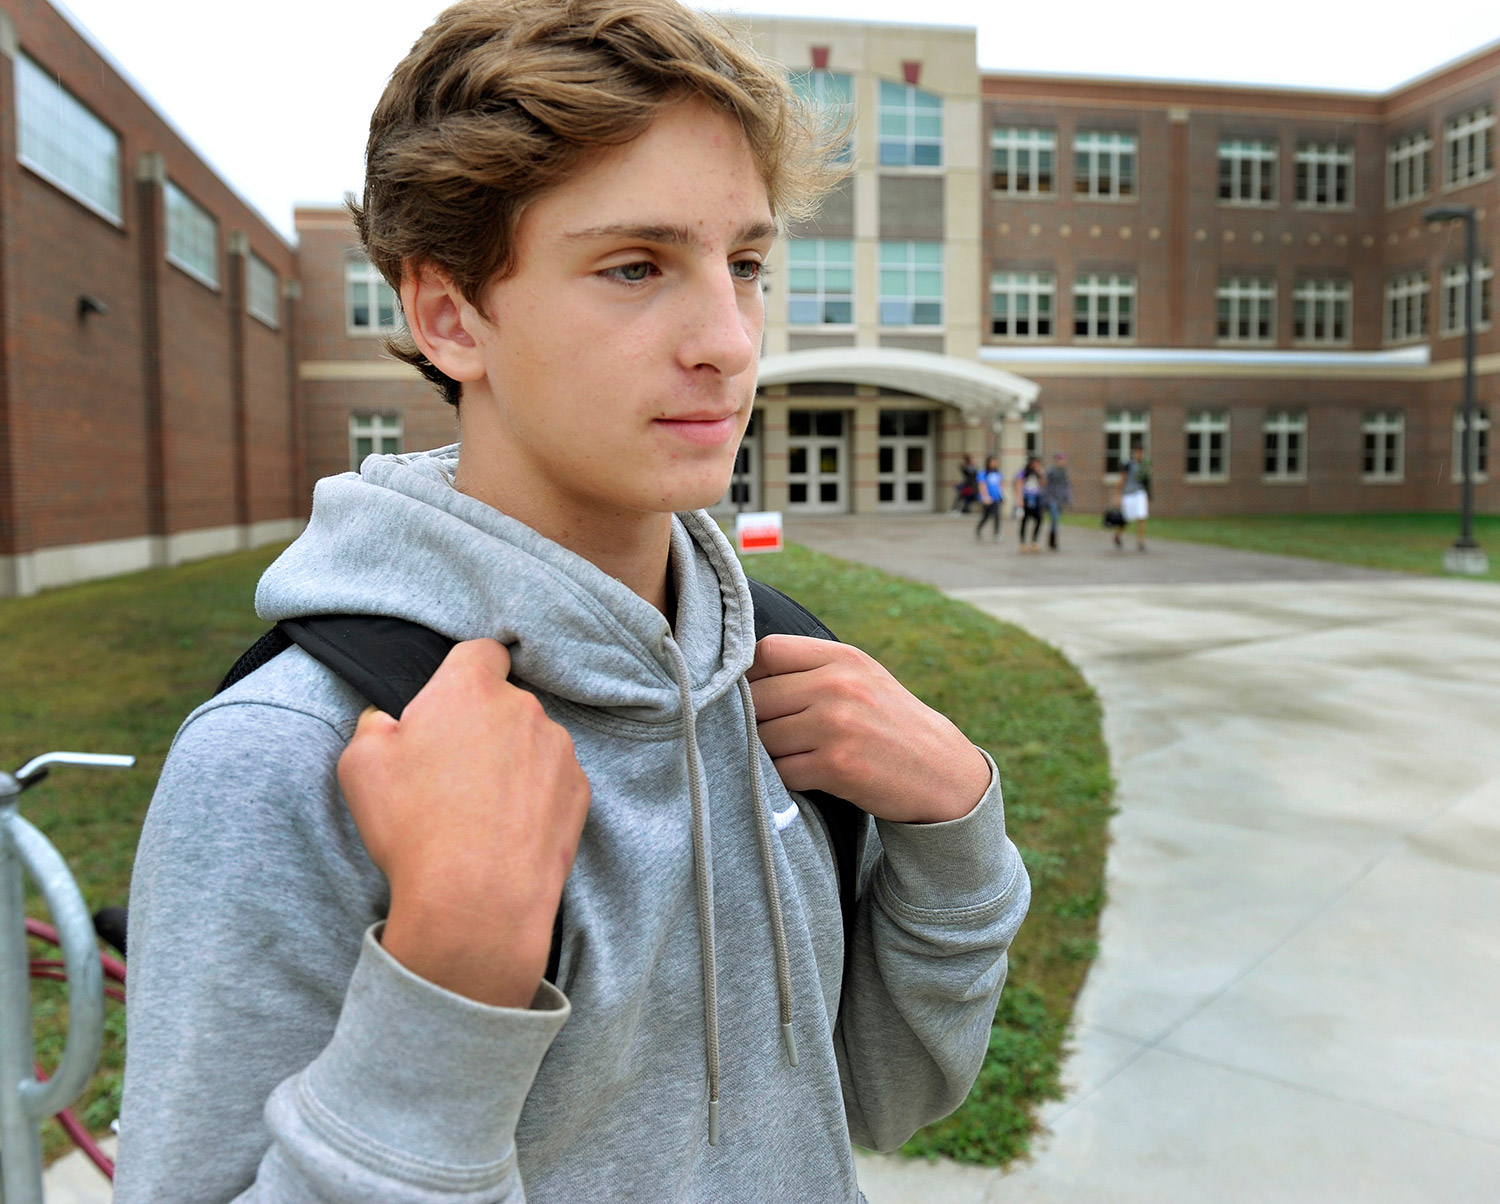 Sophomore David Fiorini is disappointed that South Portland High is canceling some dances this year. He sees it as a drastic step to address the bad behavior of a few students. John Ewing/Staff Photographer